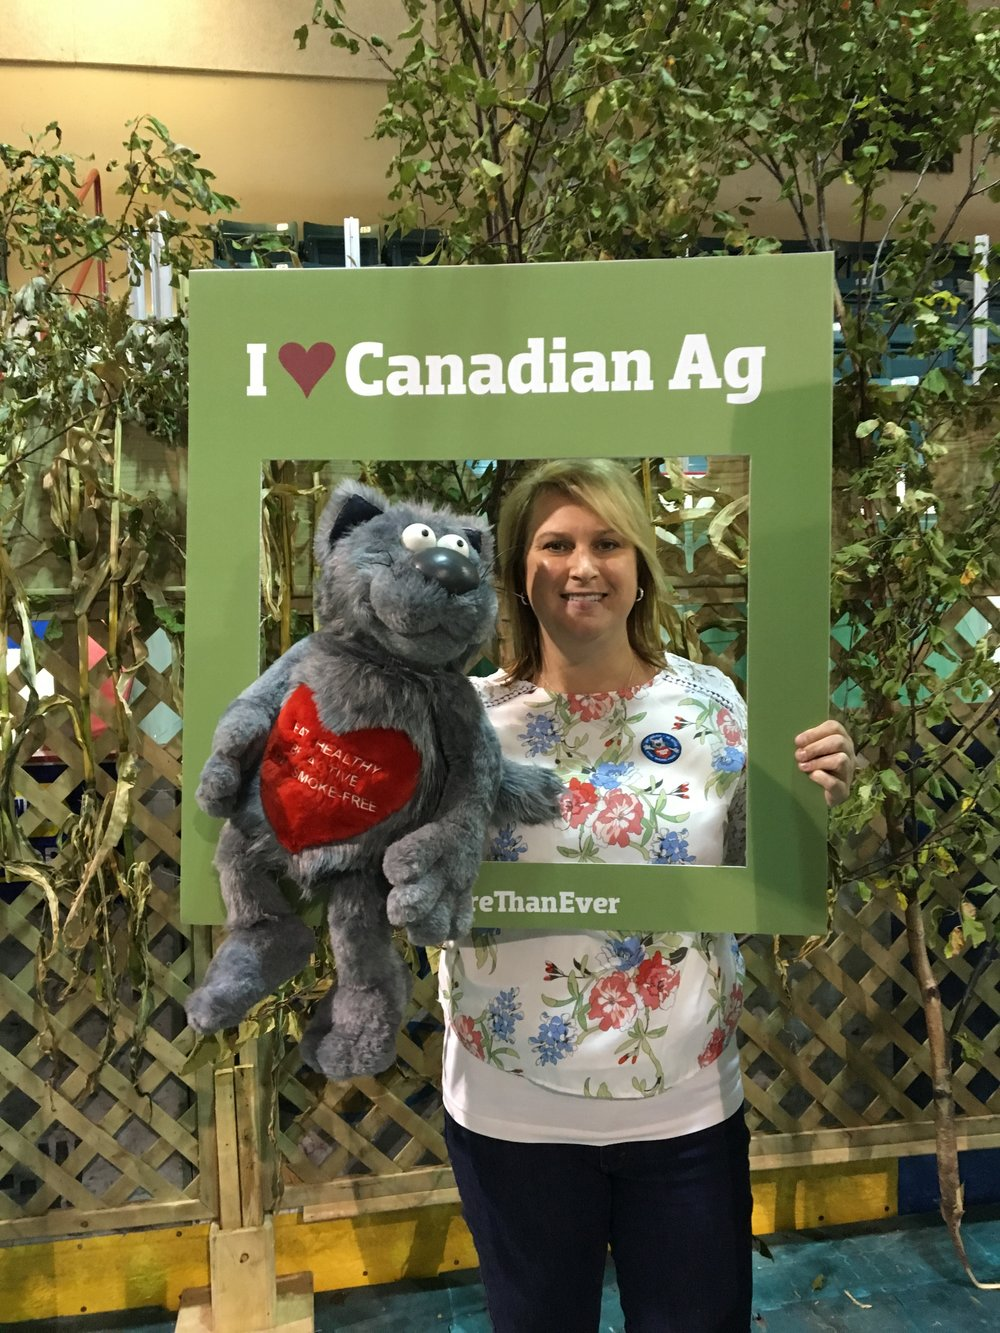 jill with Ticker at Ag event.jpg